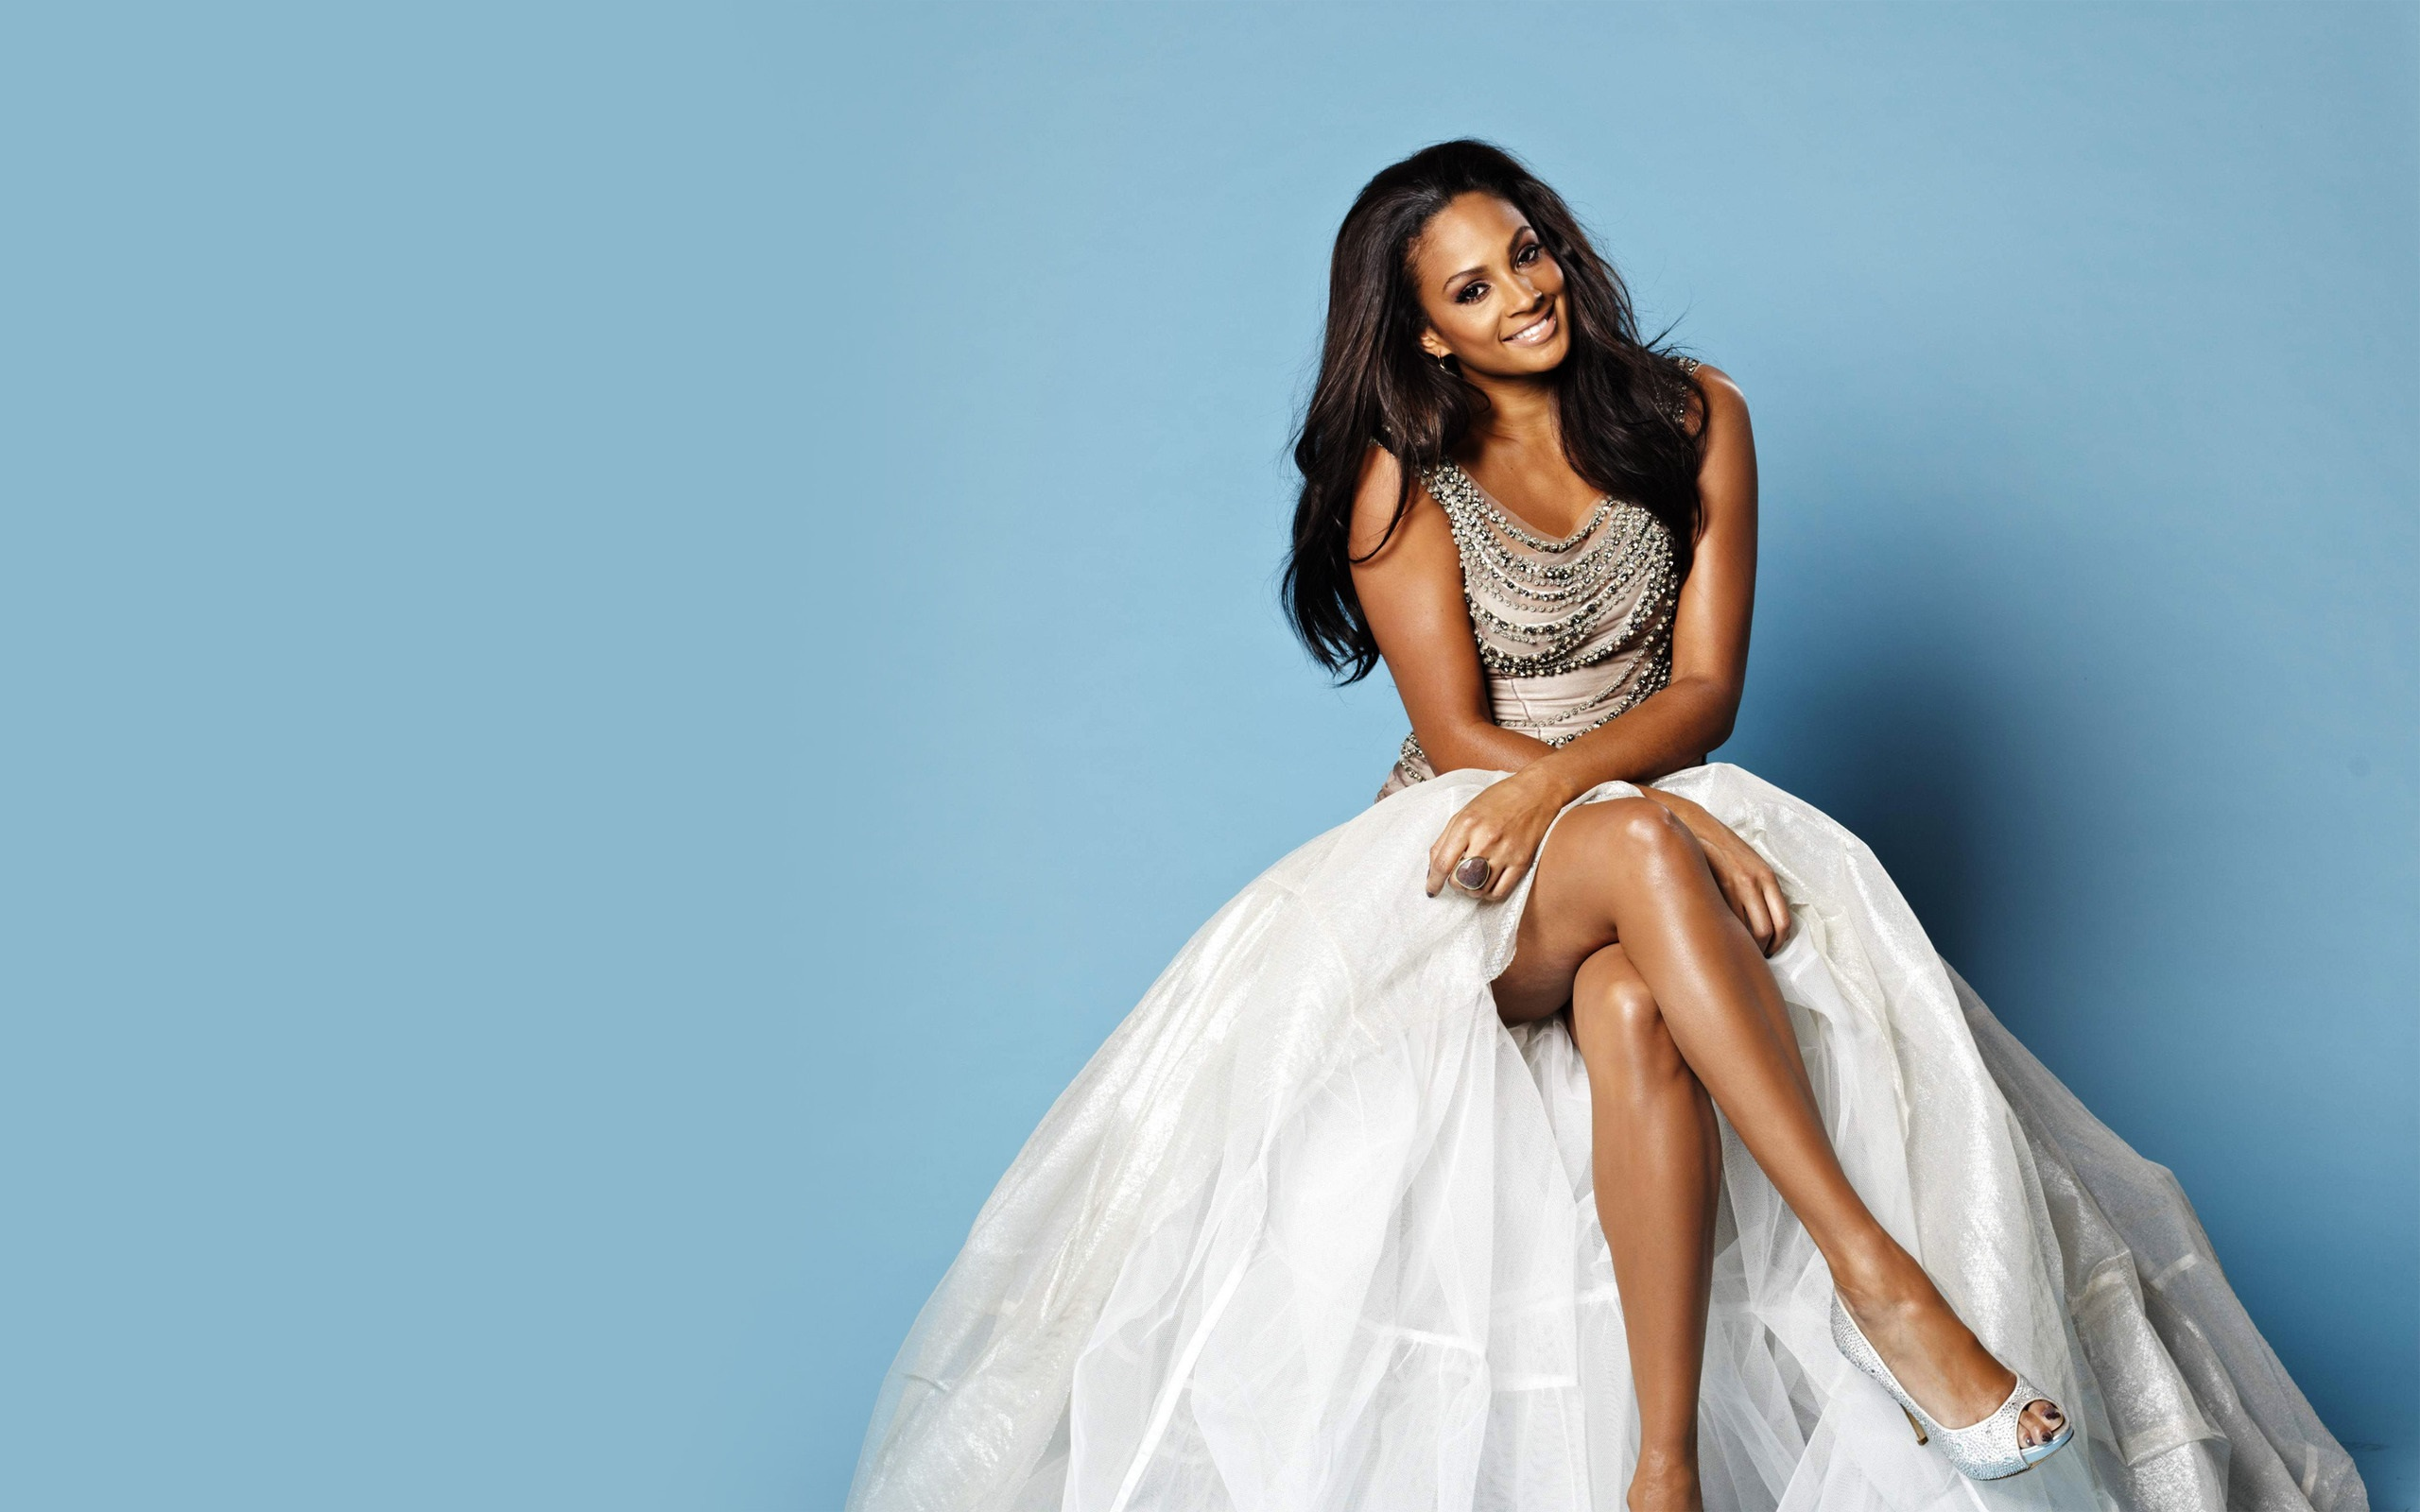 Alesha Dixon Wallpapers Images Photos Pictures Backgrounds